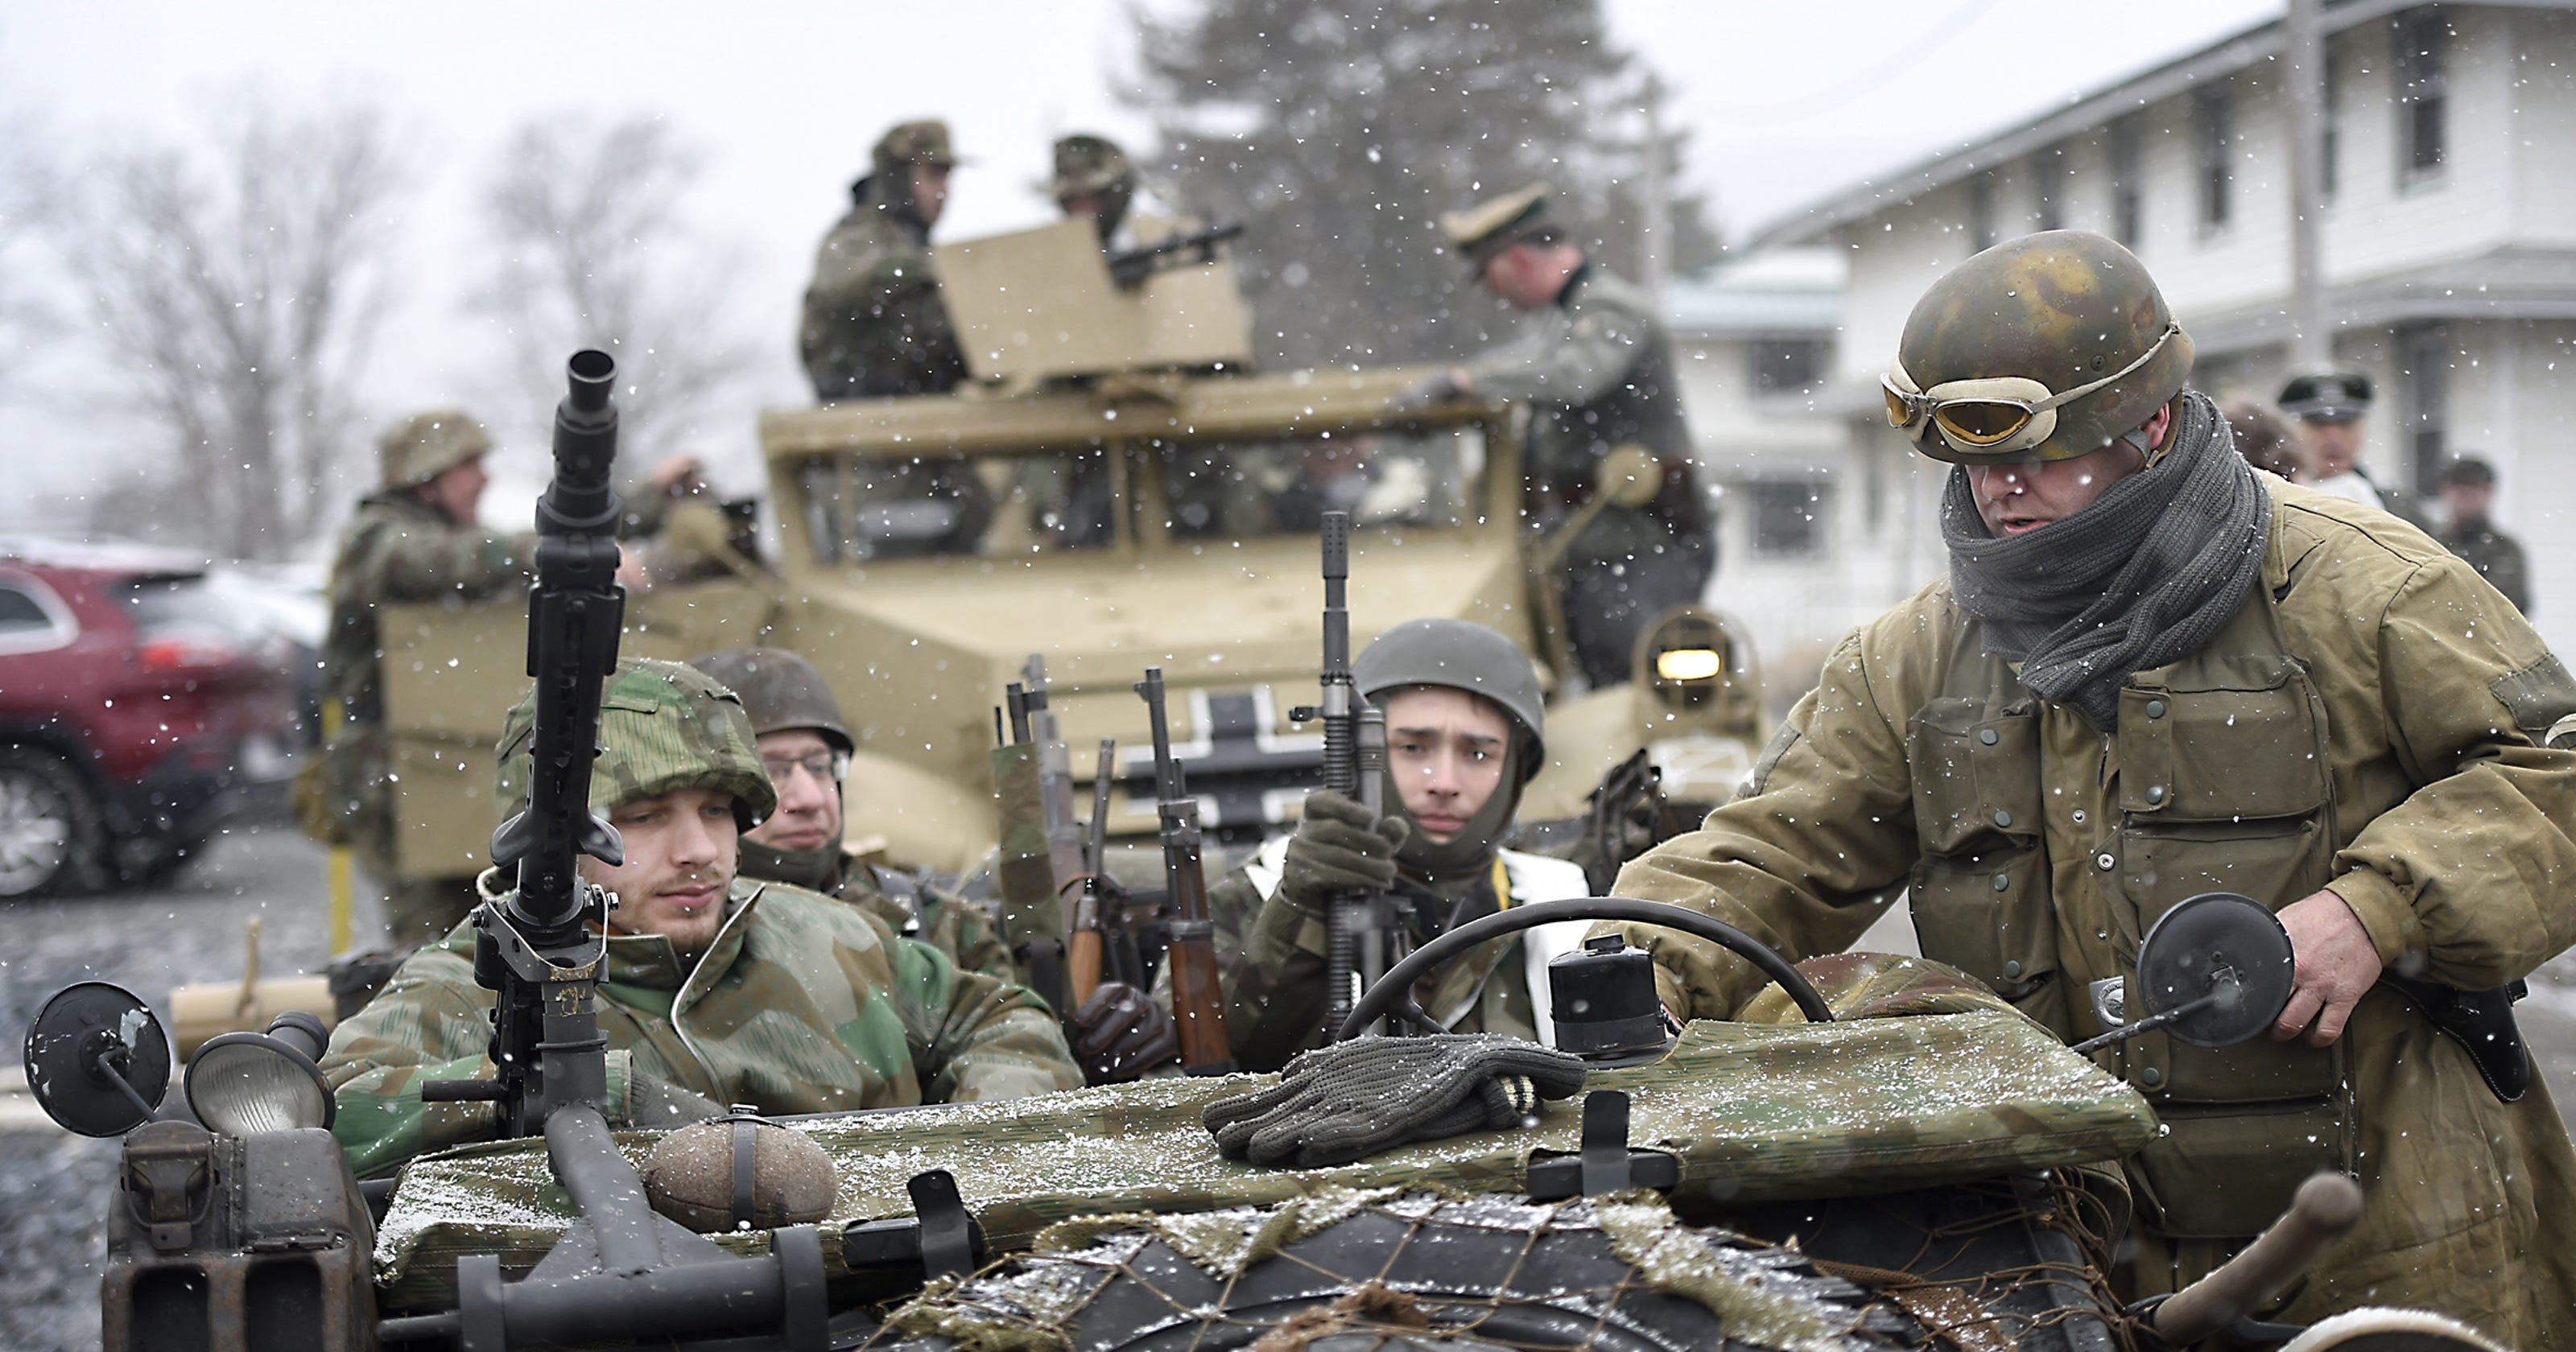 One injured in mortar accident at Battle of the Bulge reenactment